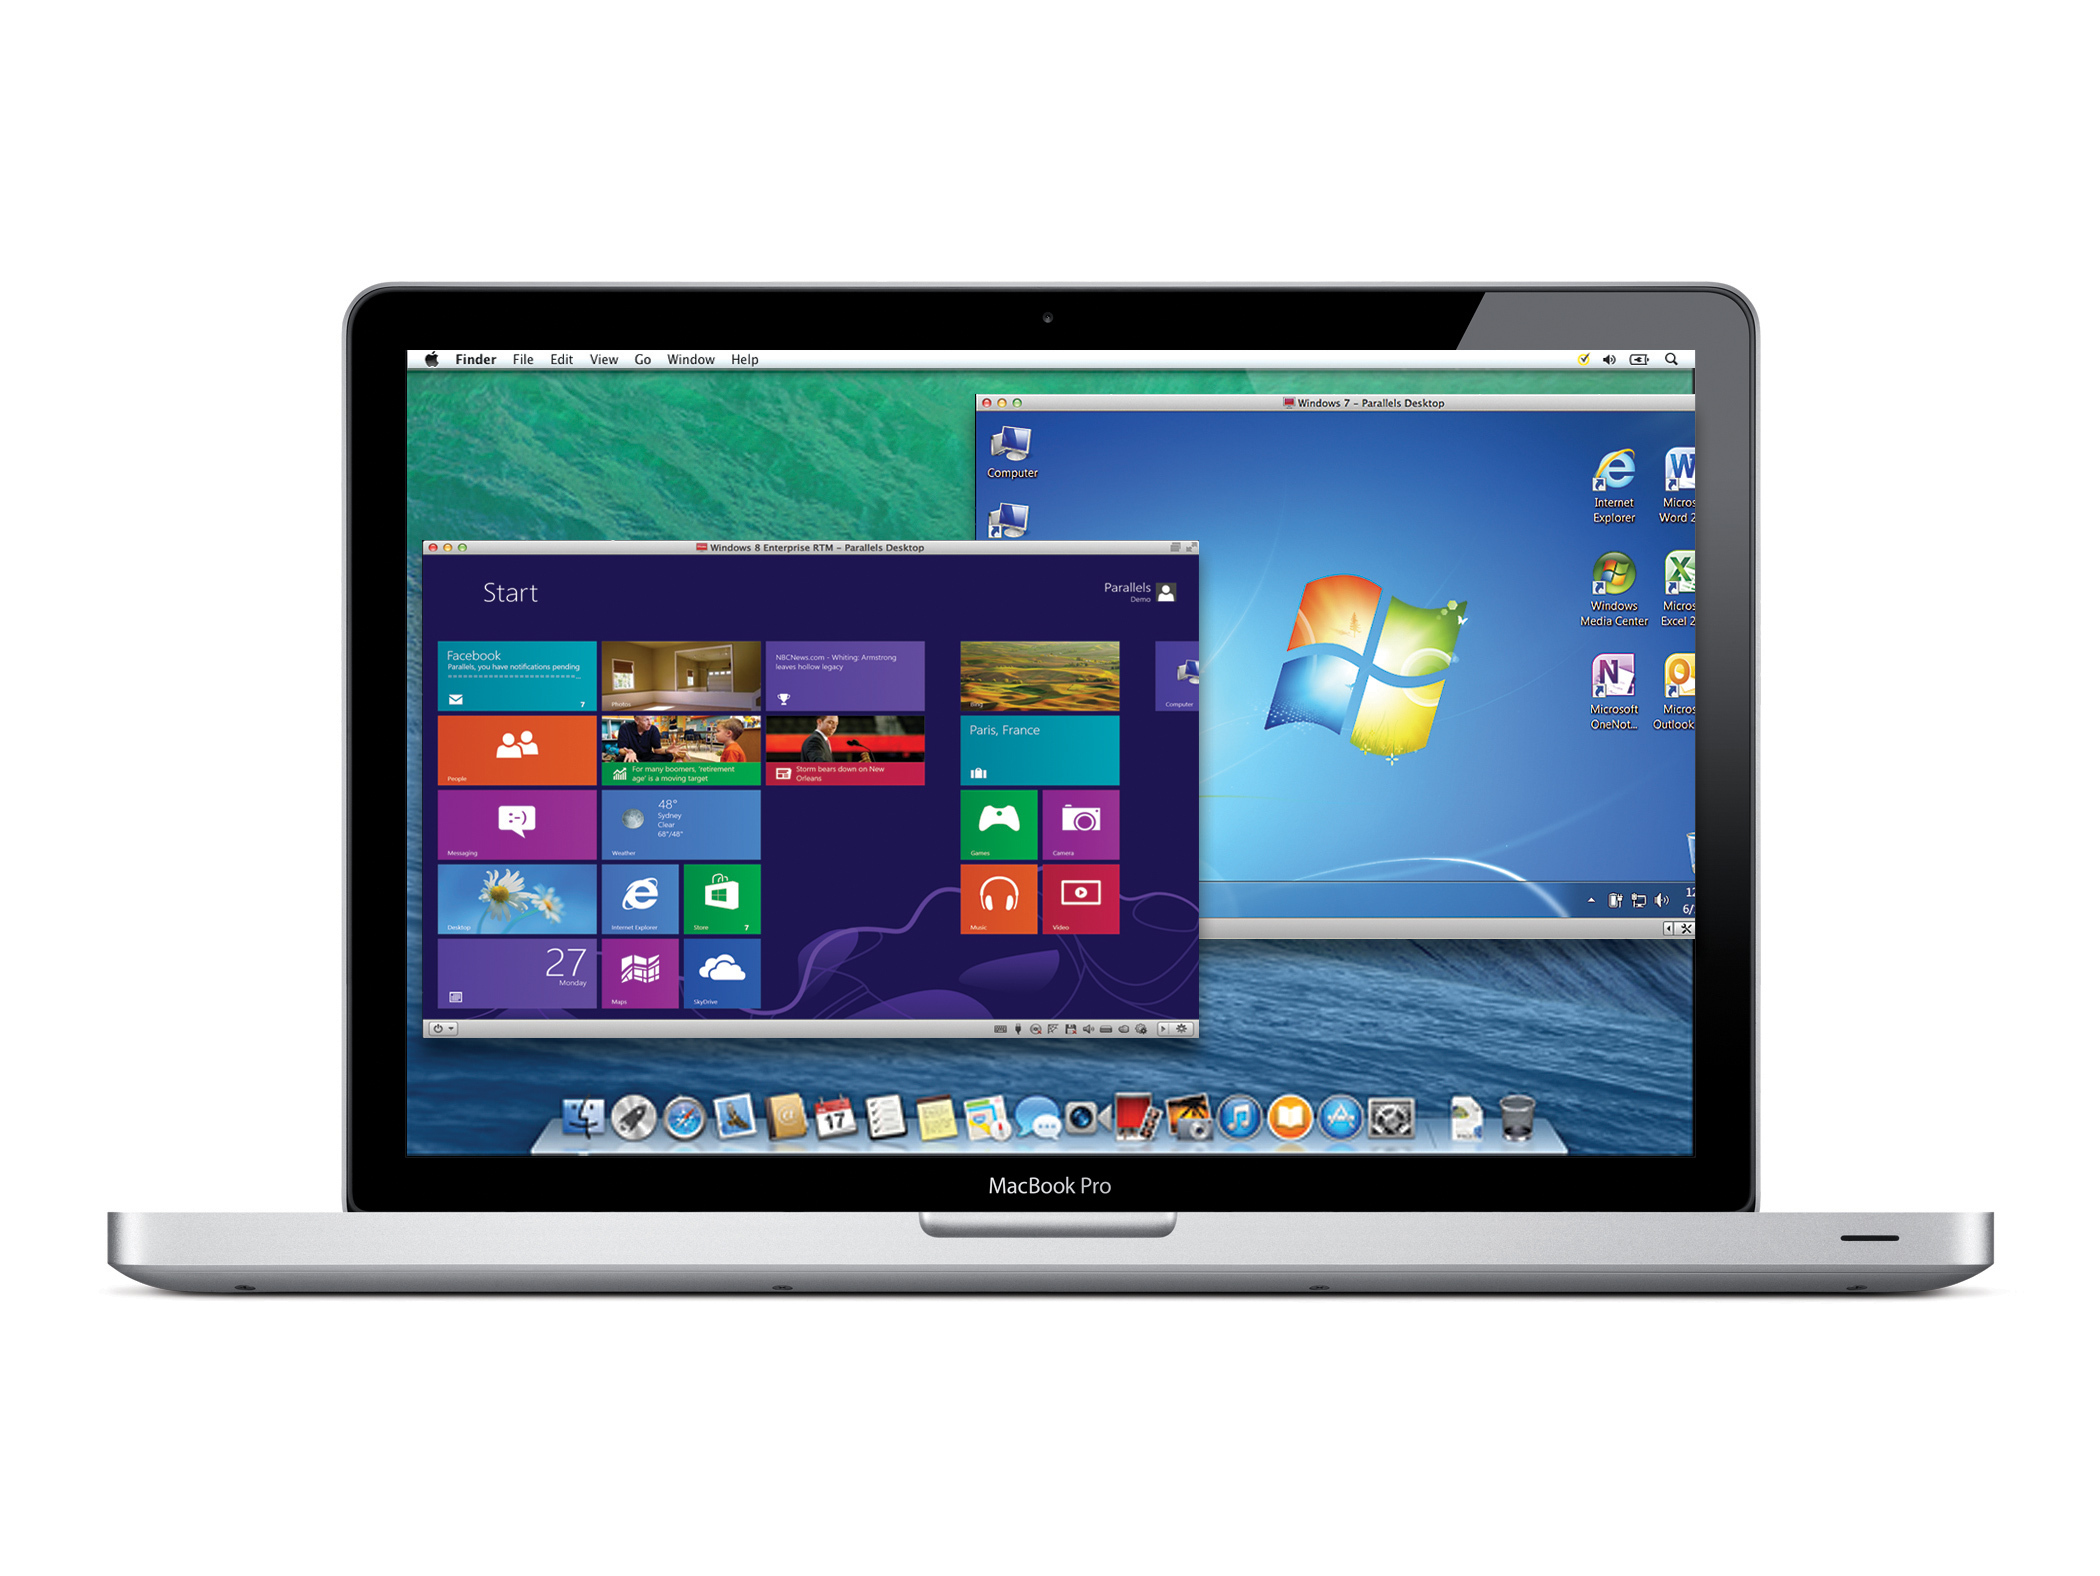 Parallels Desktop for Mac software lets you run Windows 7, Windows 8 and OS X Mavericks simultaneously on a Mac without rebooting. (Photo: Business Wire)